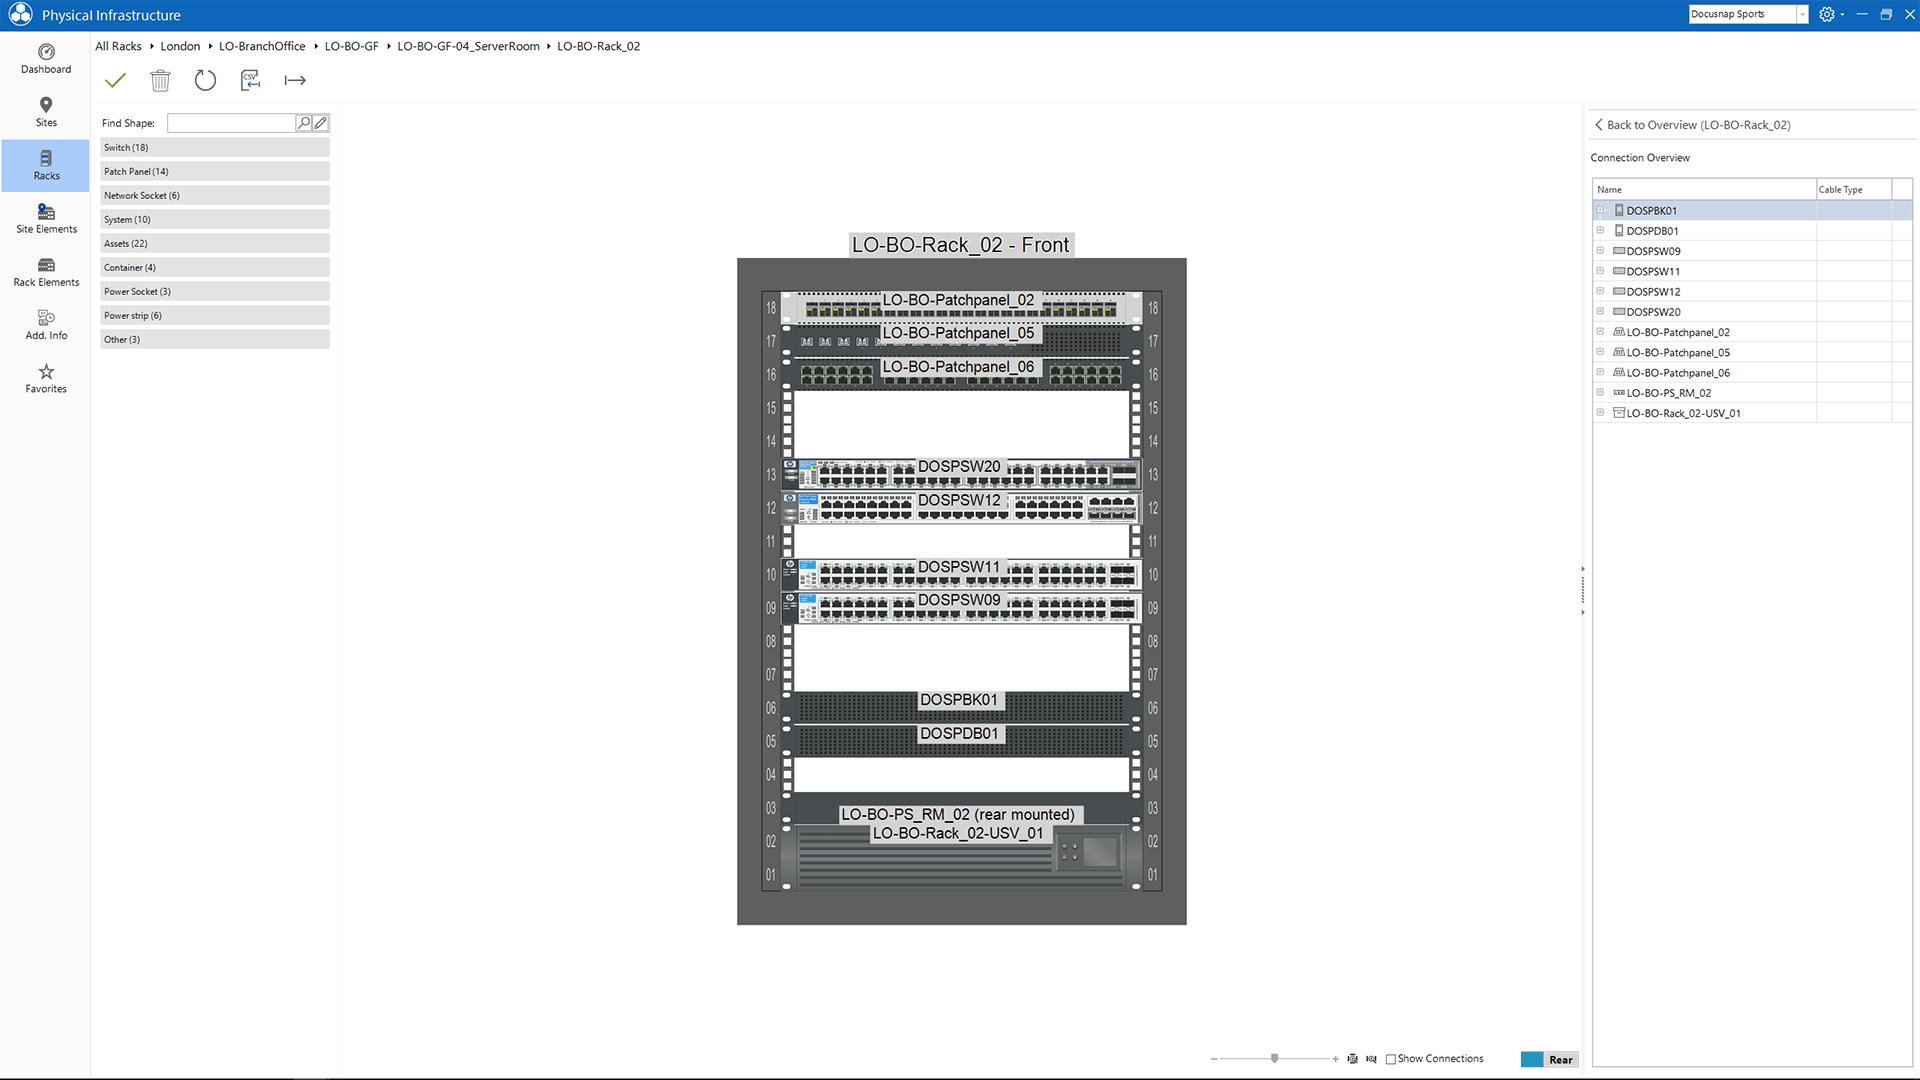 Screenshot: Hierarchical representation of the hardware rack map within the infrastructure editor